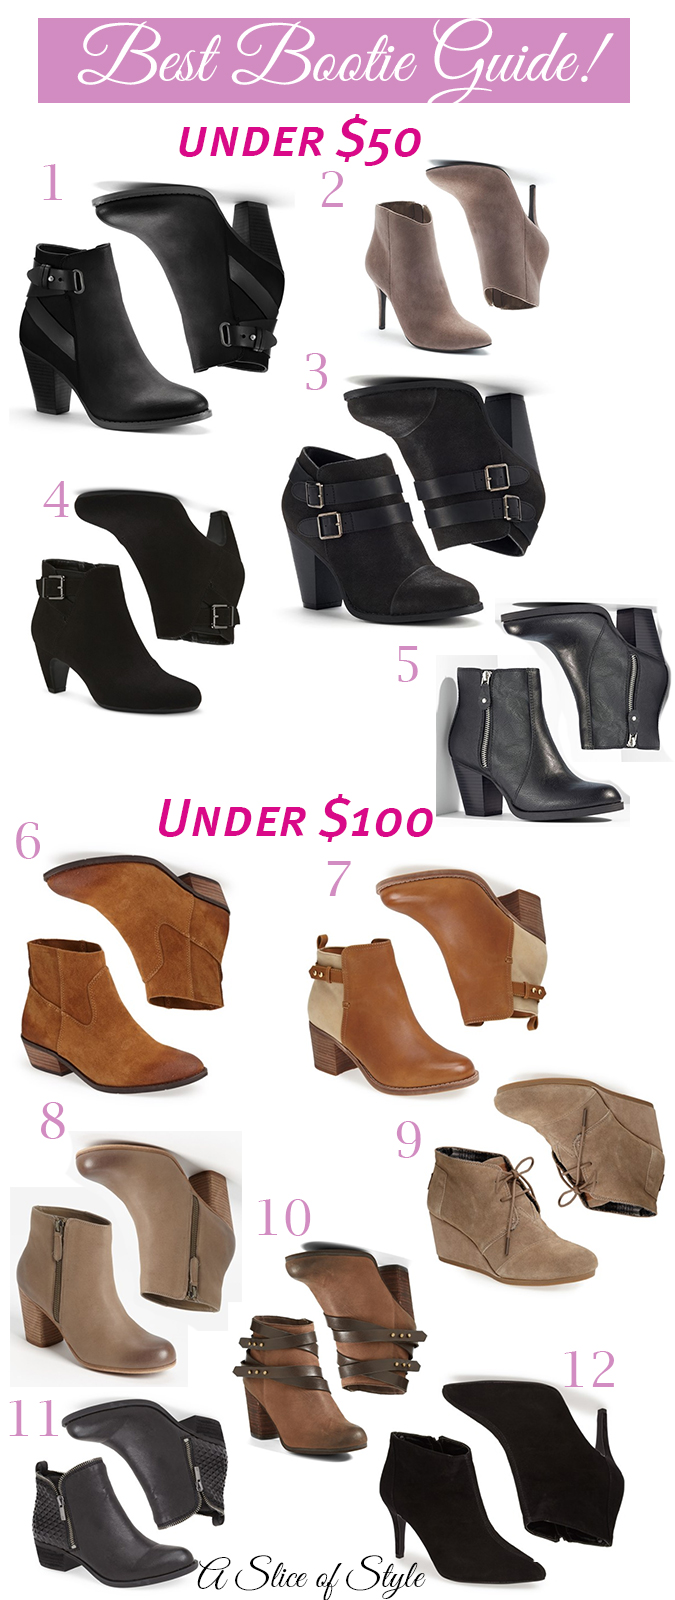 Boots, booties, best booties, booties on sale, deals on booties, fall outfit ideas, winter boots, winter outfit ideas, deals, sale on boots, boots sale, booties sale, gift guide, women's gift guide